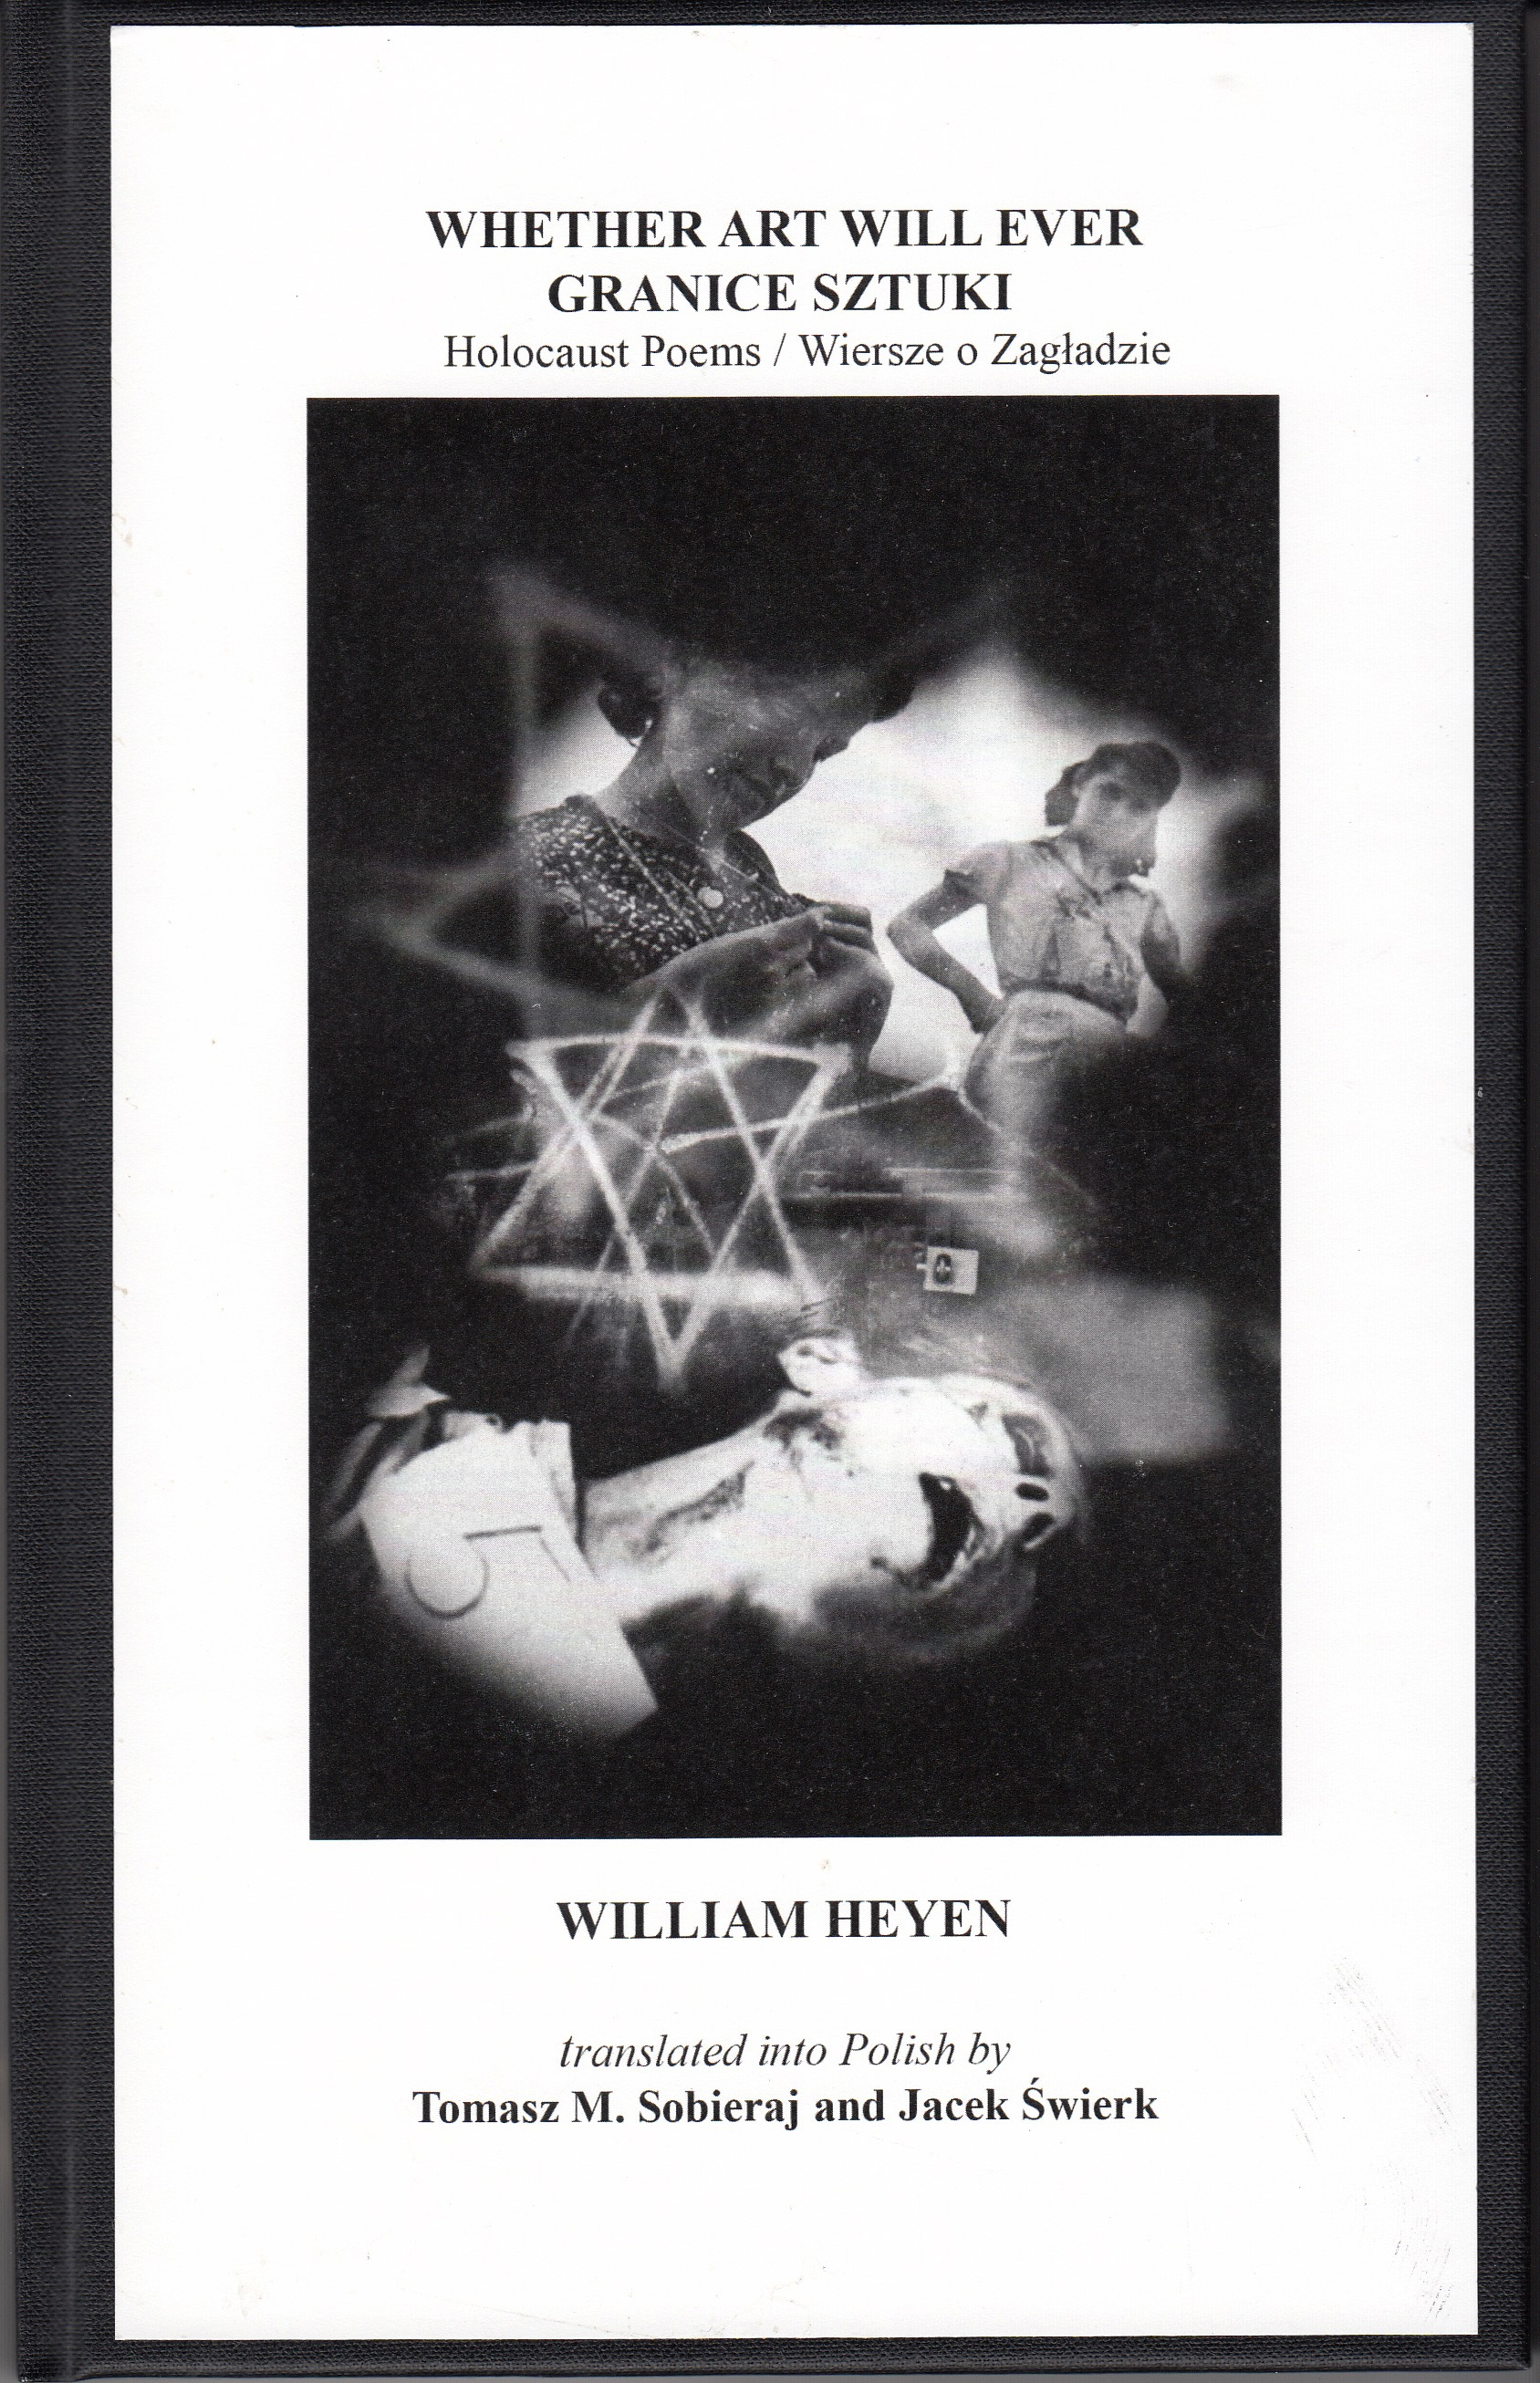 Whether Art Will Ever / Granice Sztuki : Holocaust Poems / Wiersze o Zagladzie